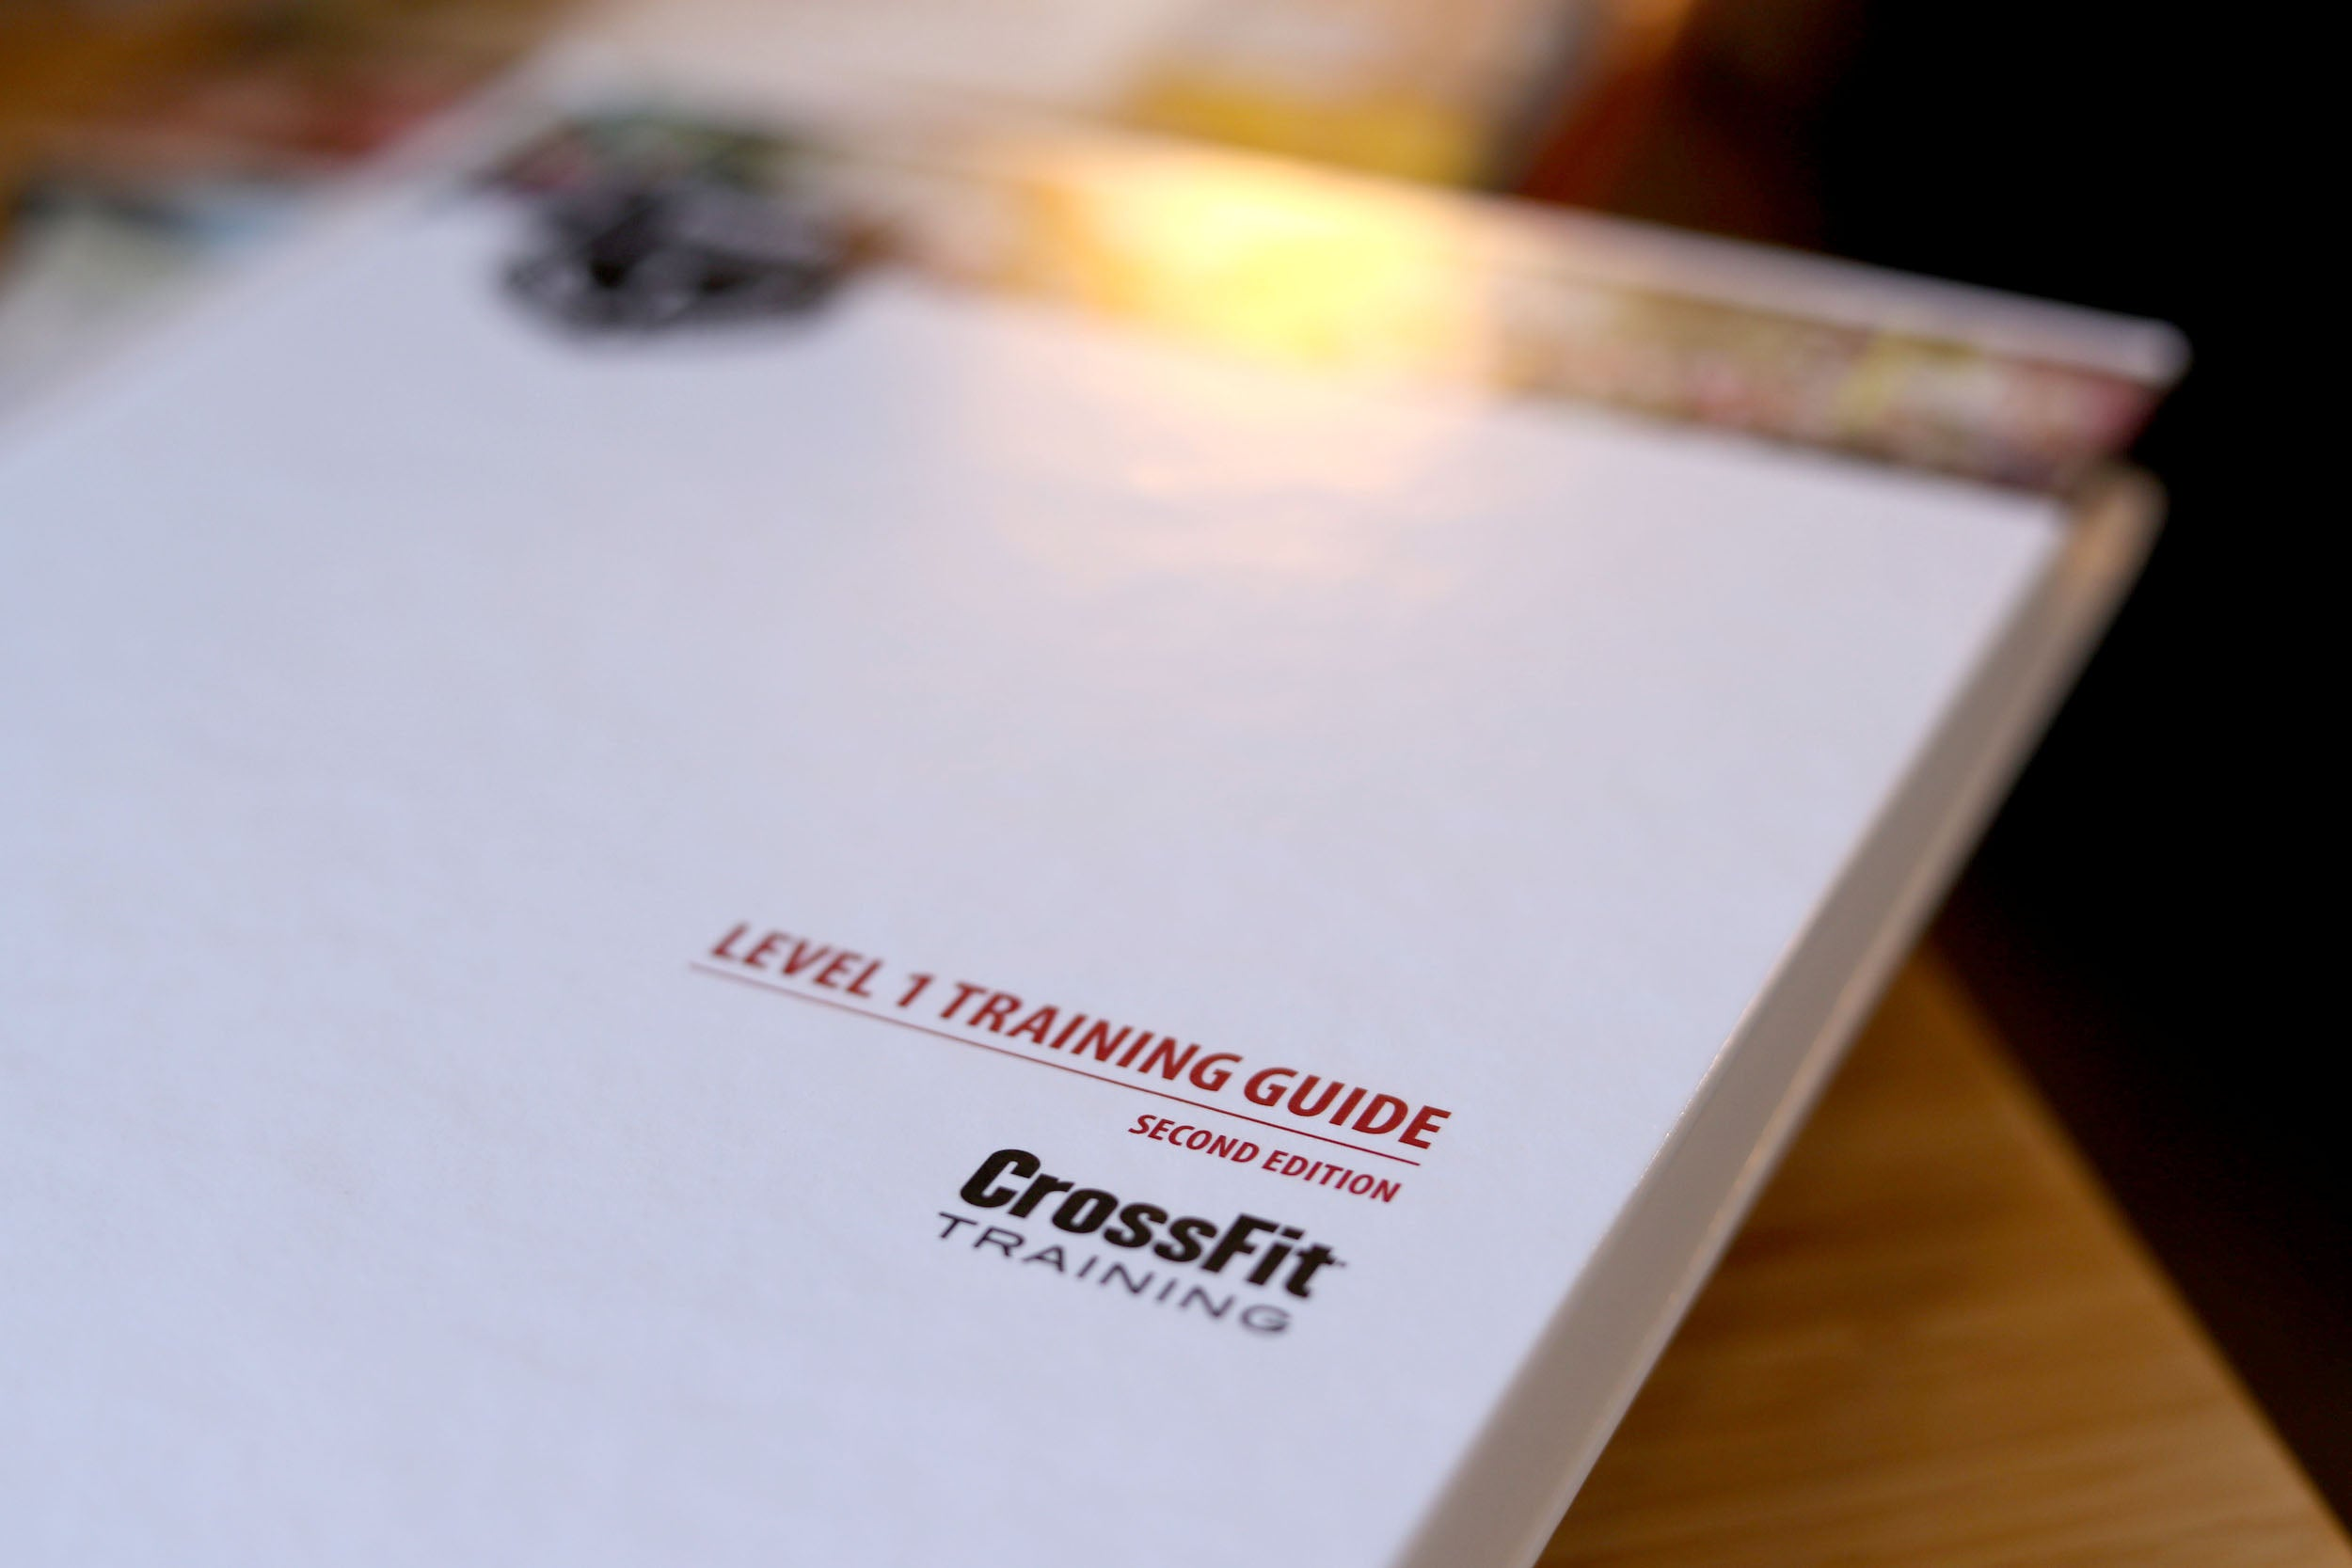 ... CrossFit™ Level 1 Training Guide, Second Edition - Hardcover ...